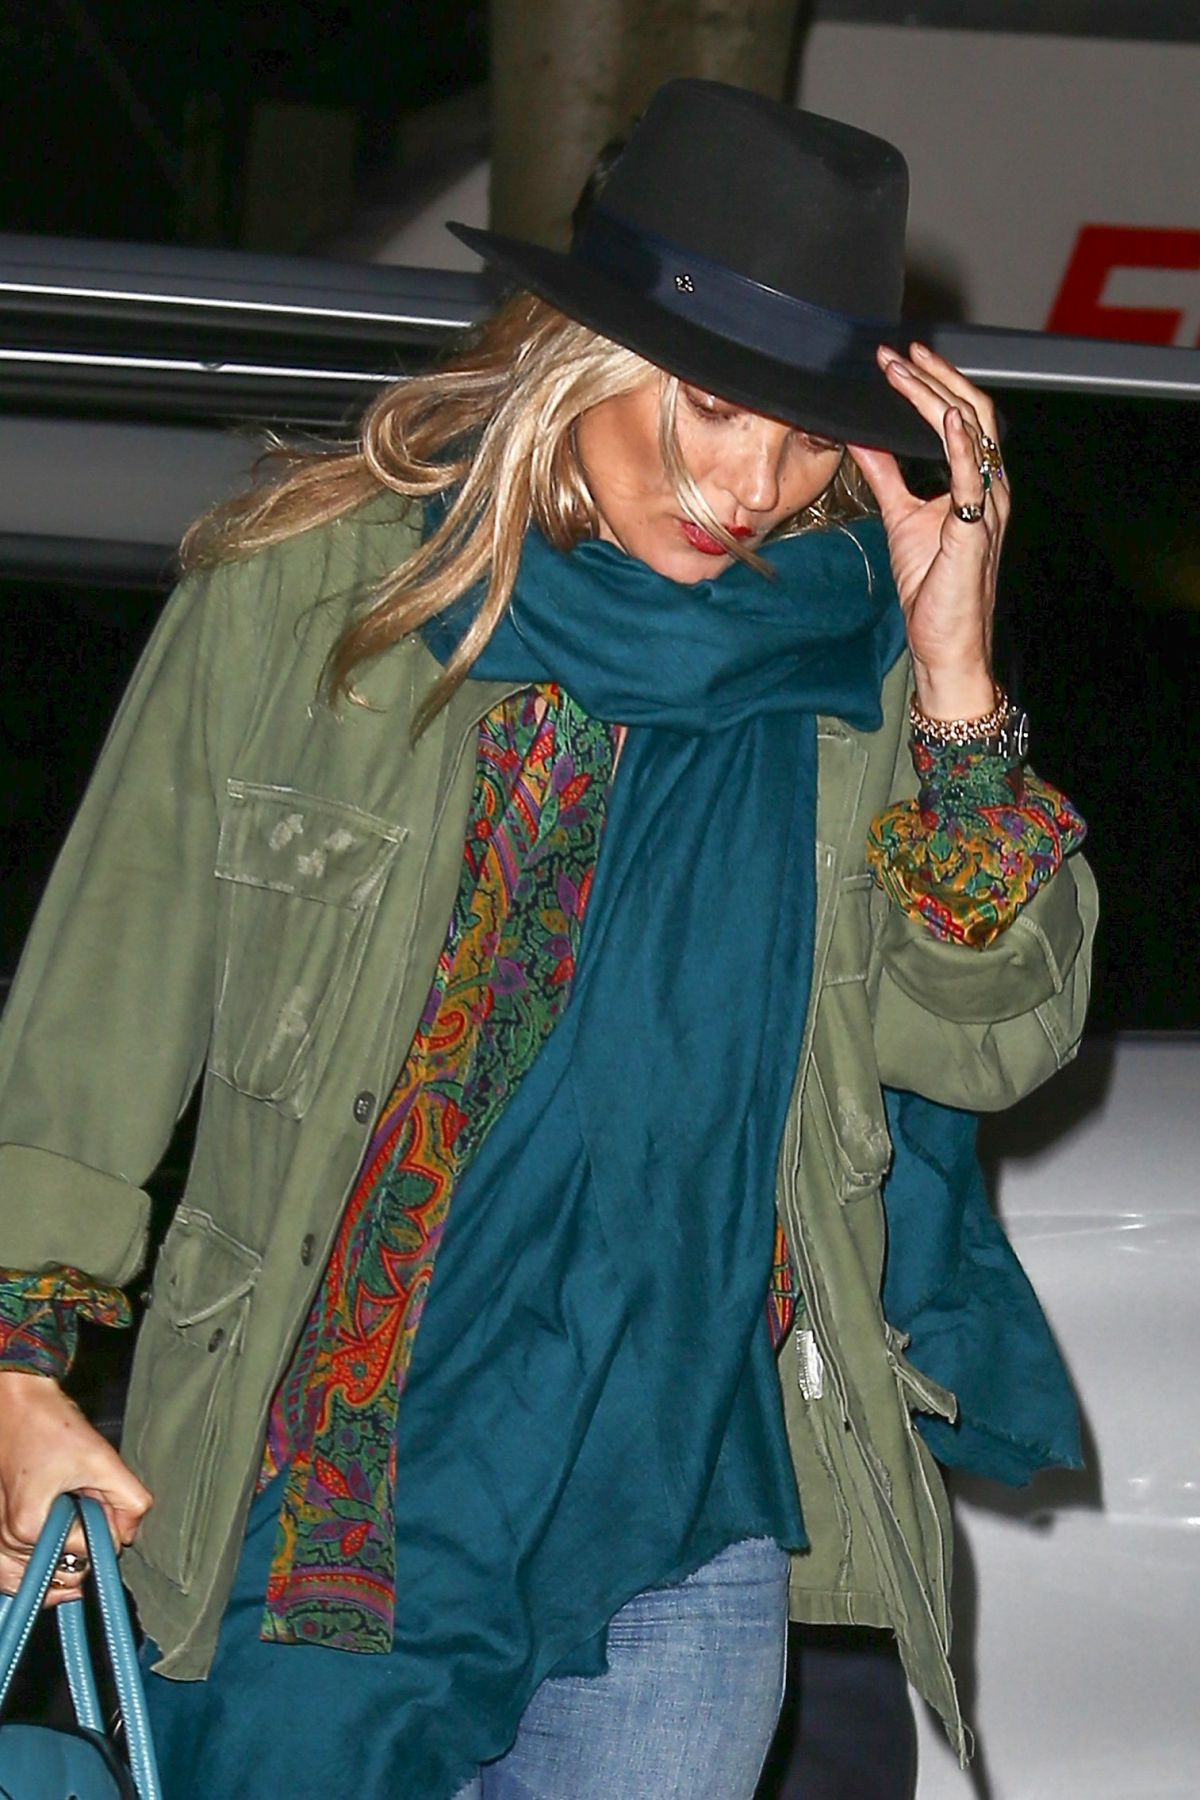 Kate Moss - posting requires reading thread rules, see post #1 15